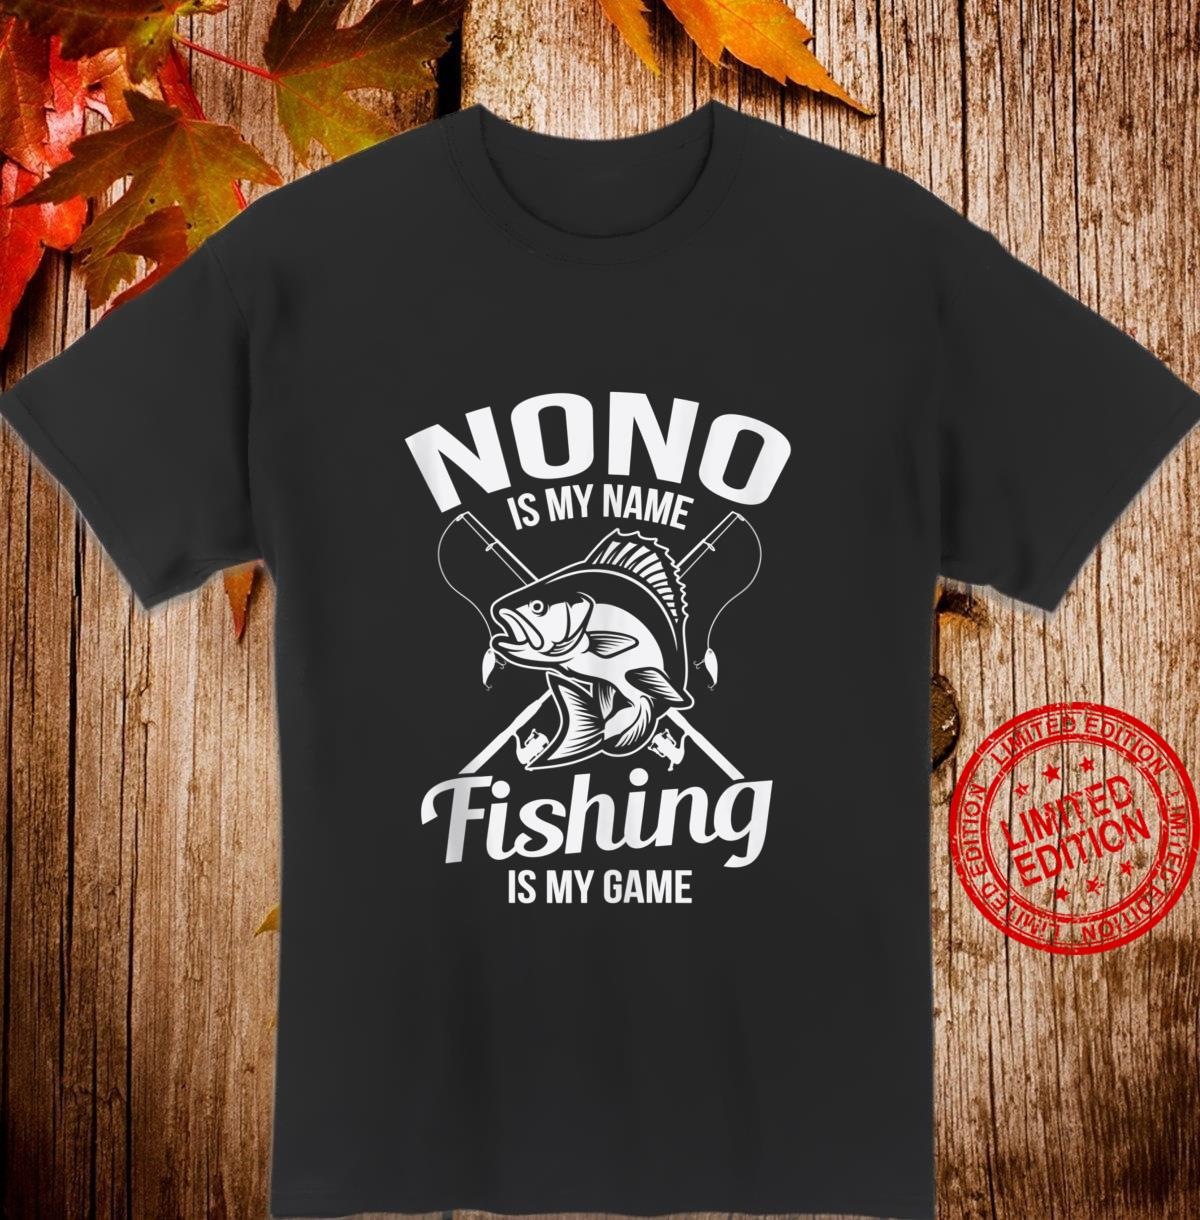 Nono is My Name Fishing Boating Shirt